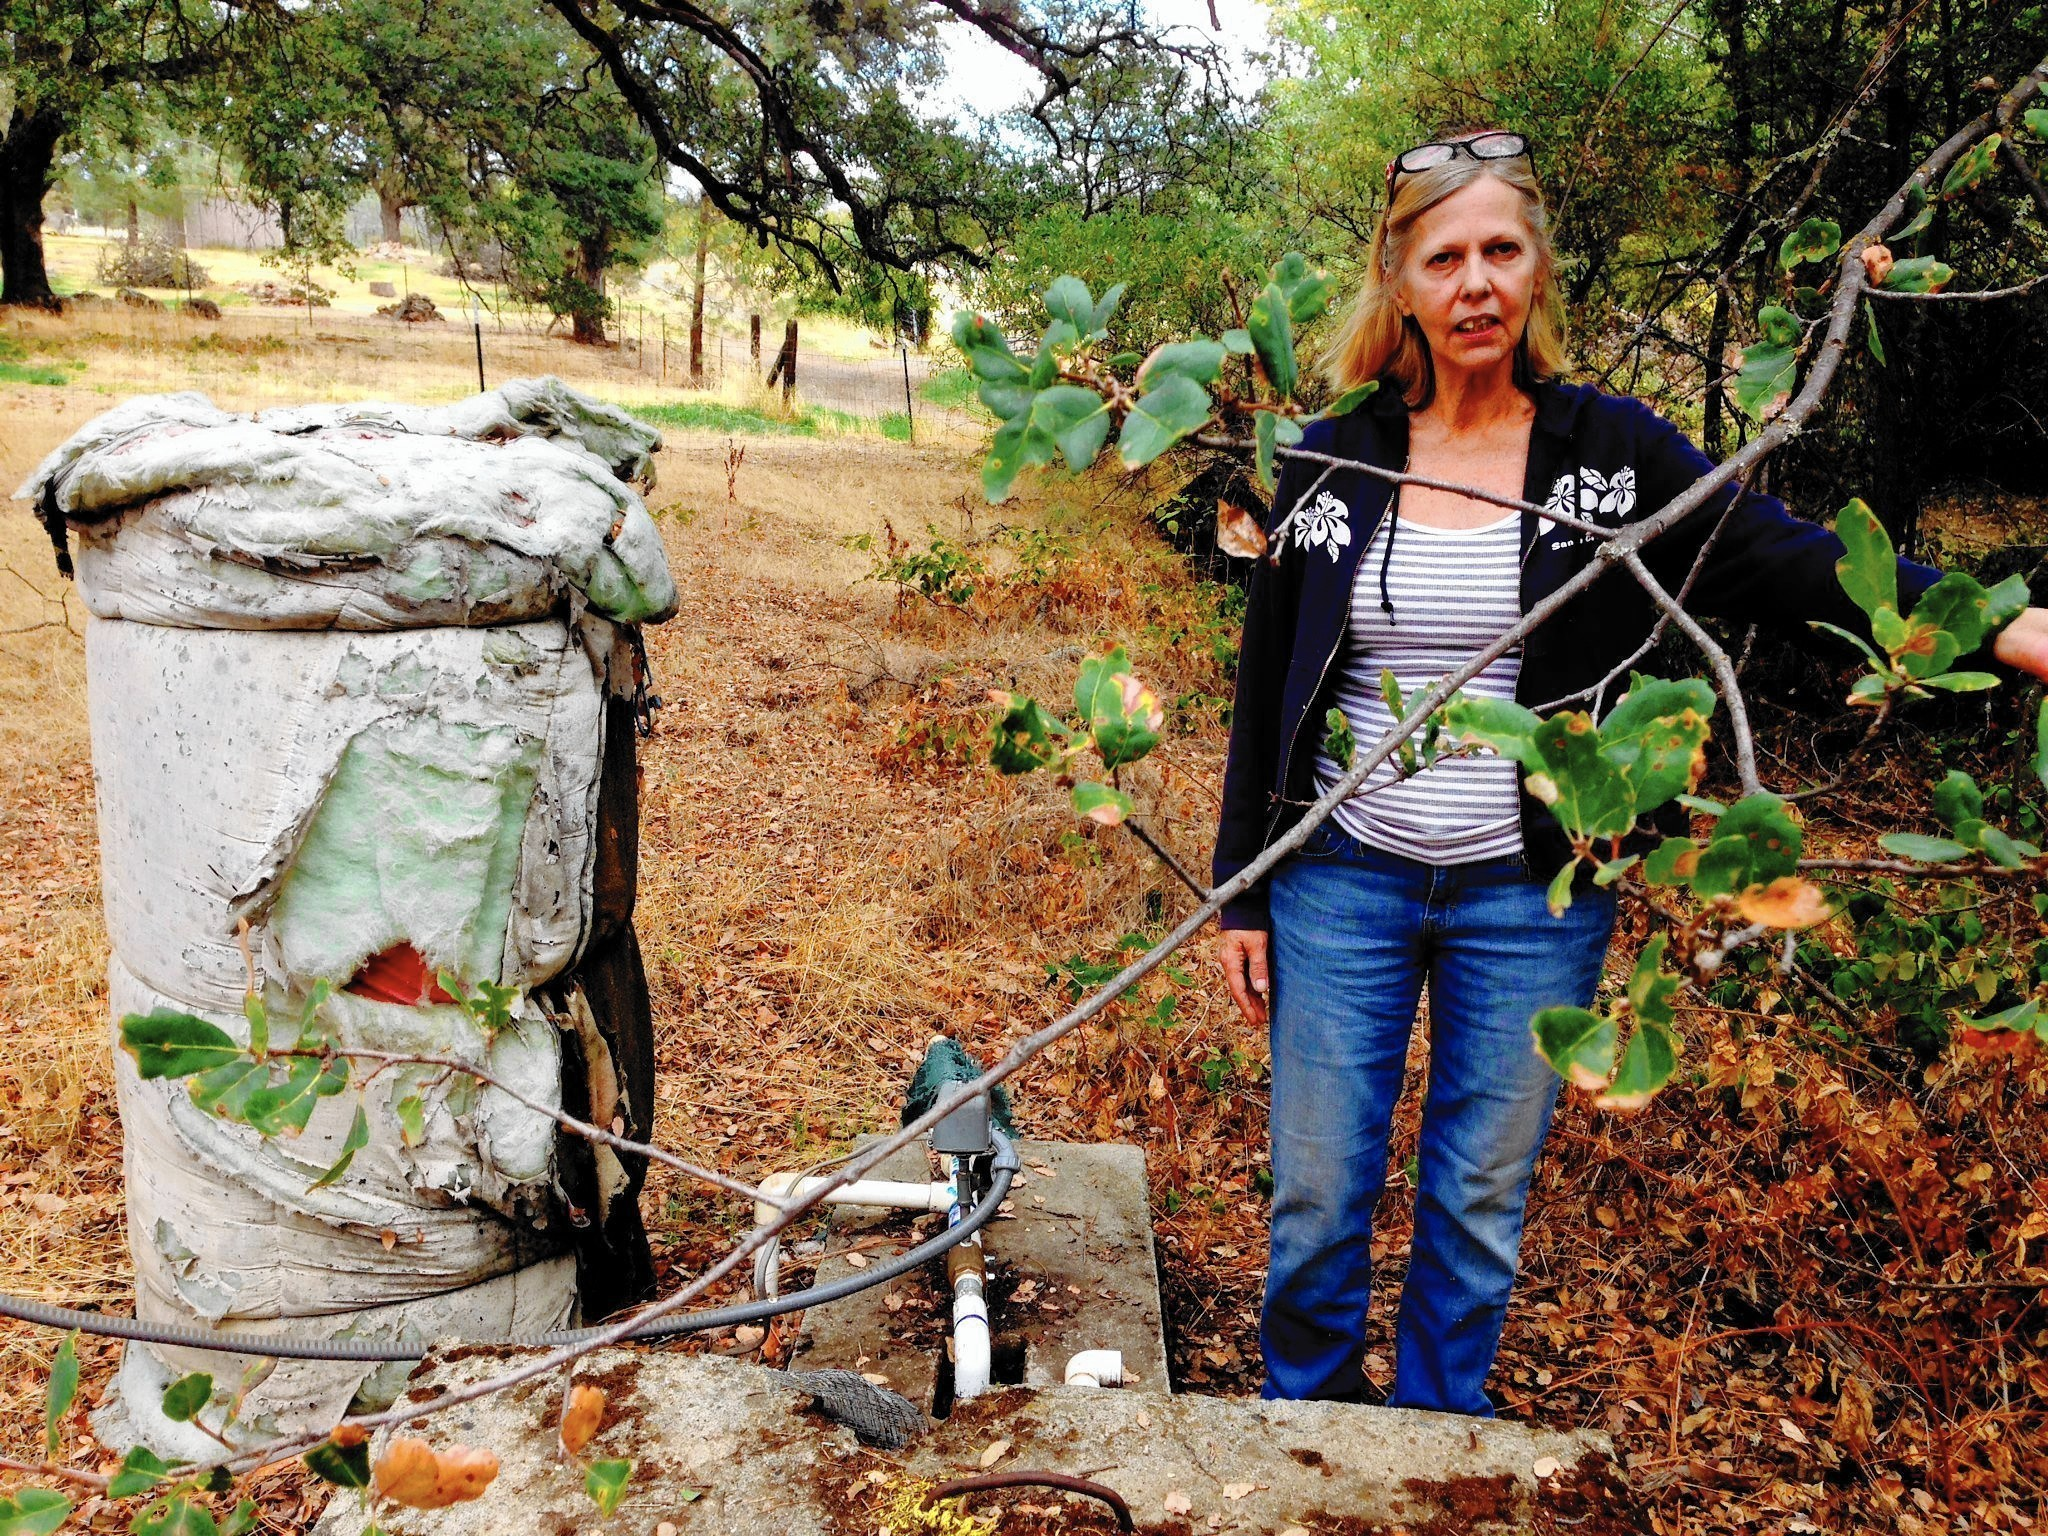 For Sierra resident, the well runs dry -- along with her options